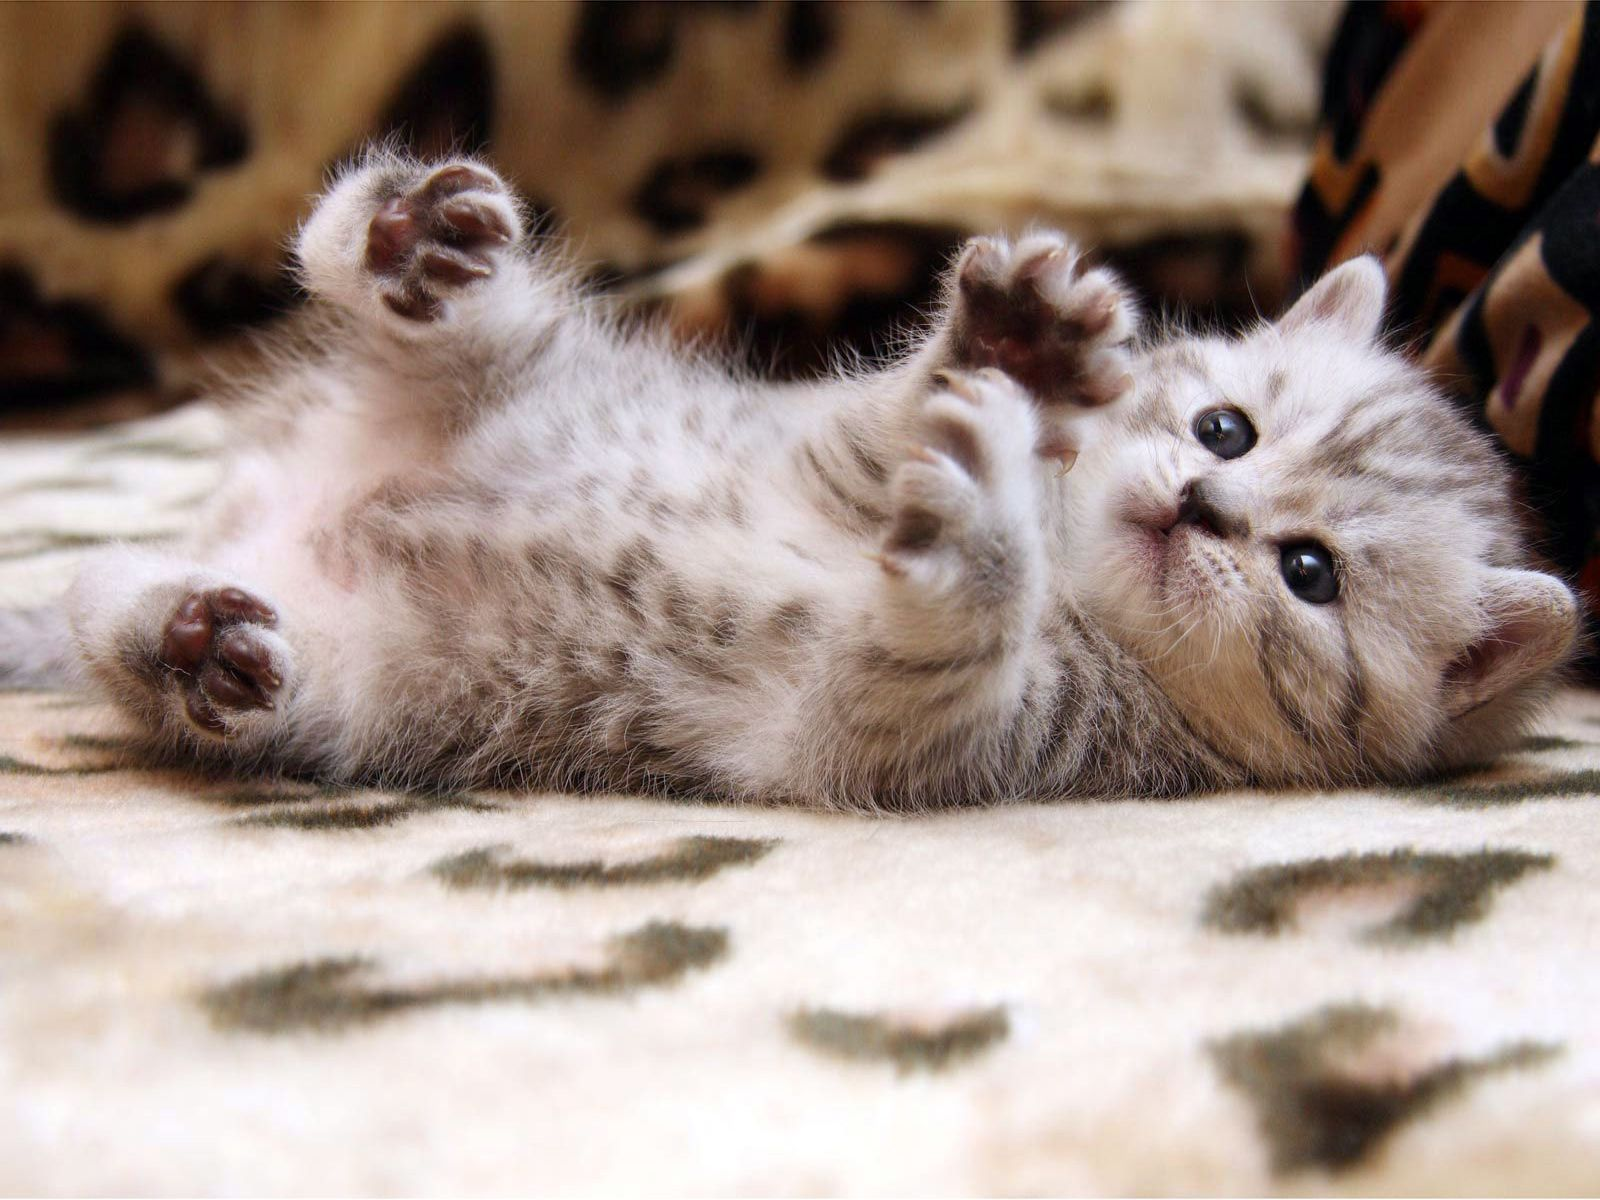 Cute Cats Wallpapers High Resolution In 2020 Baby Cats Kitten Pictures Kittens Cutest